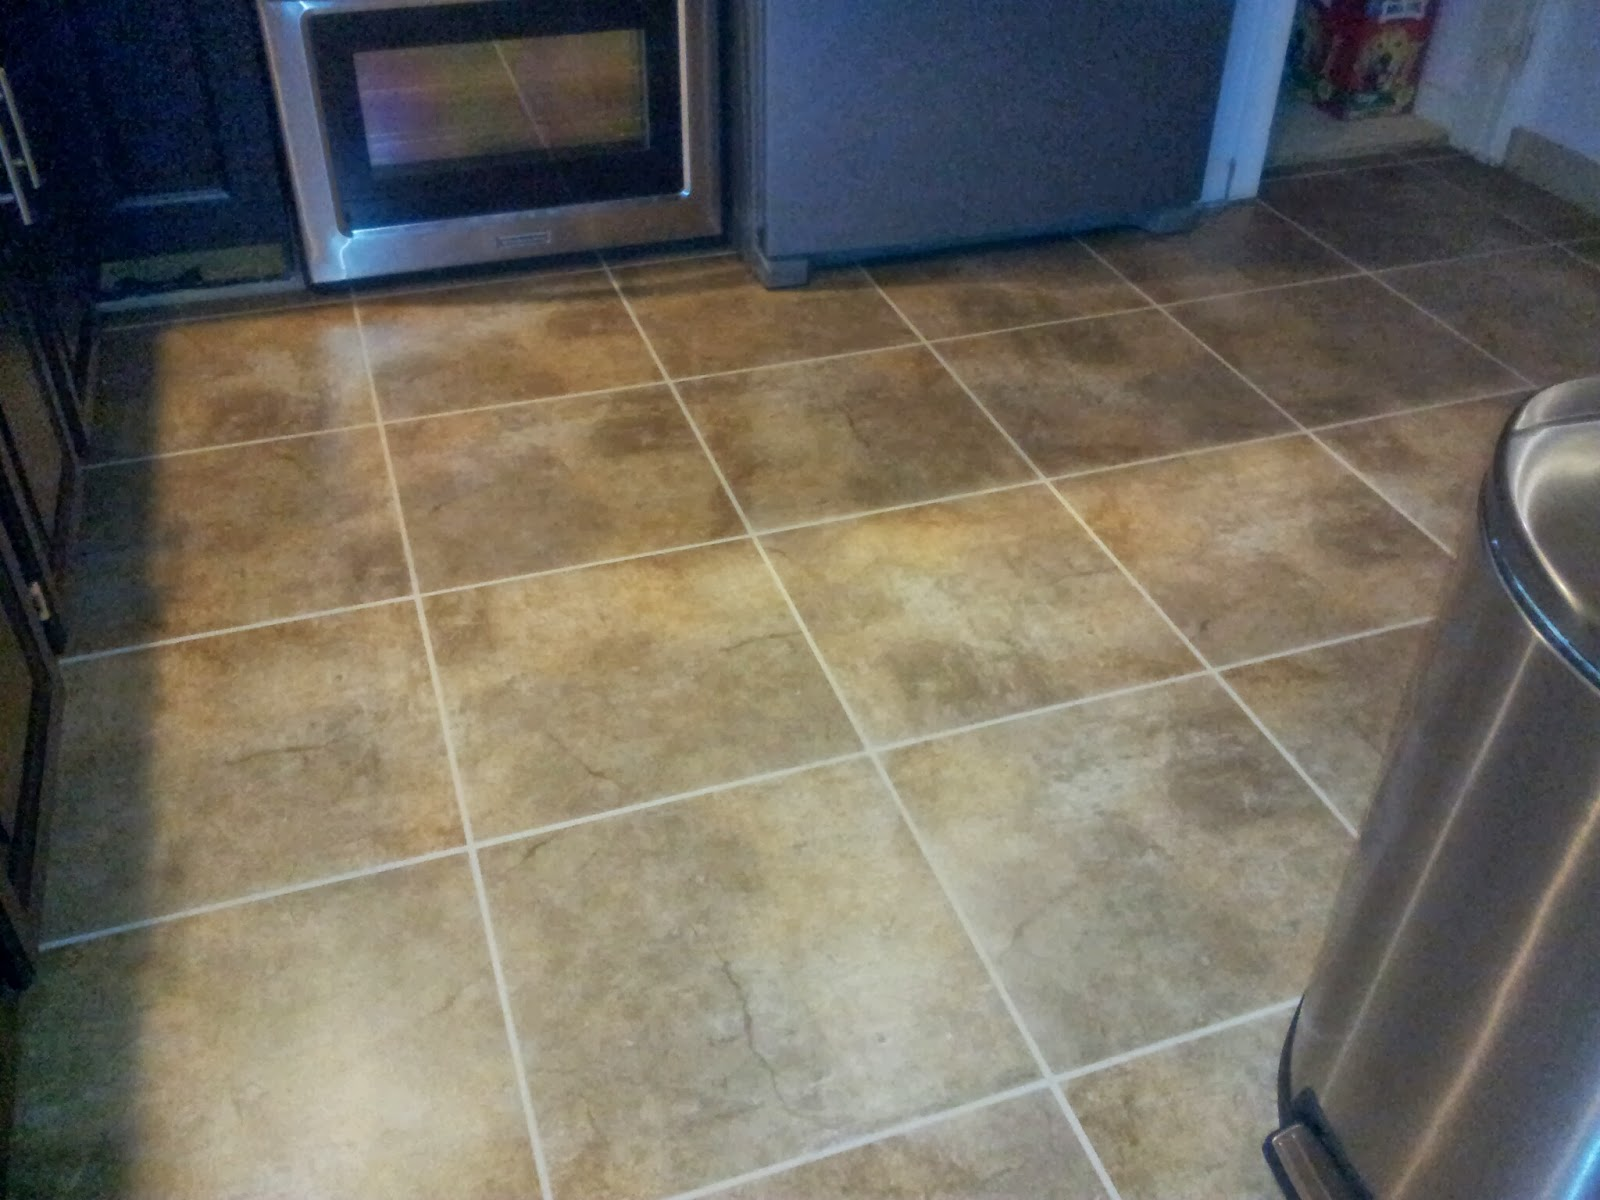 Installing snapstone kitchen floor tile for our home remodel ian kitchen tile grouting dailygadgetfo Gallery